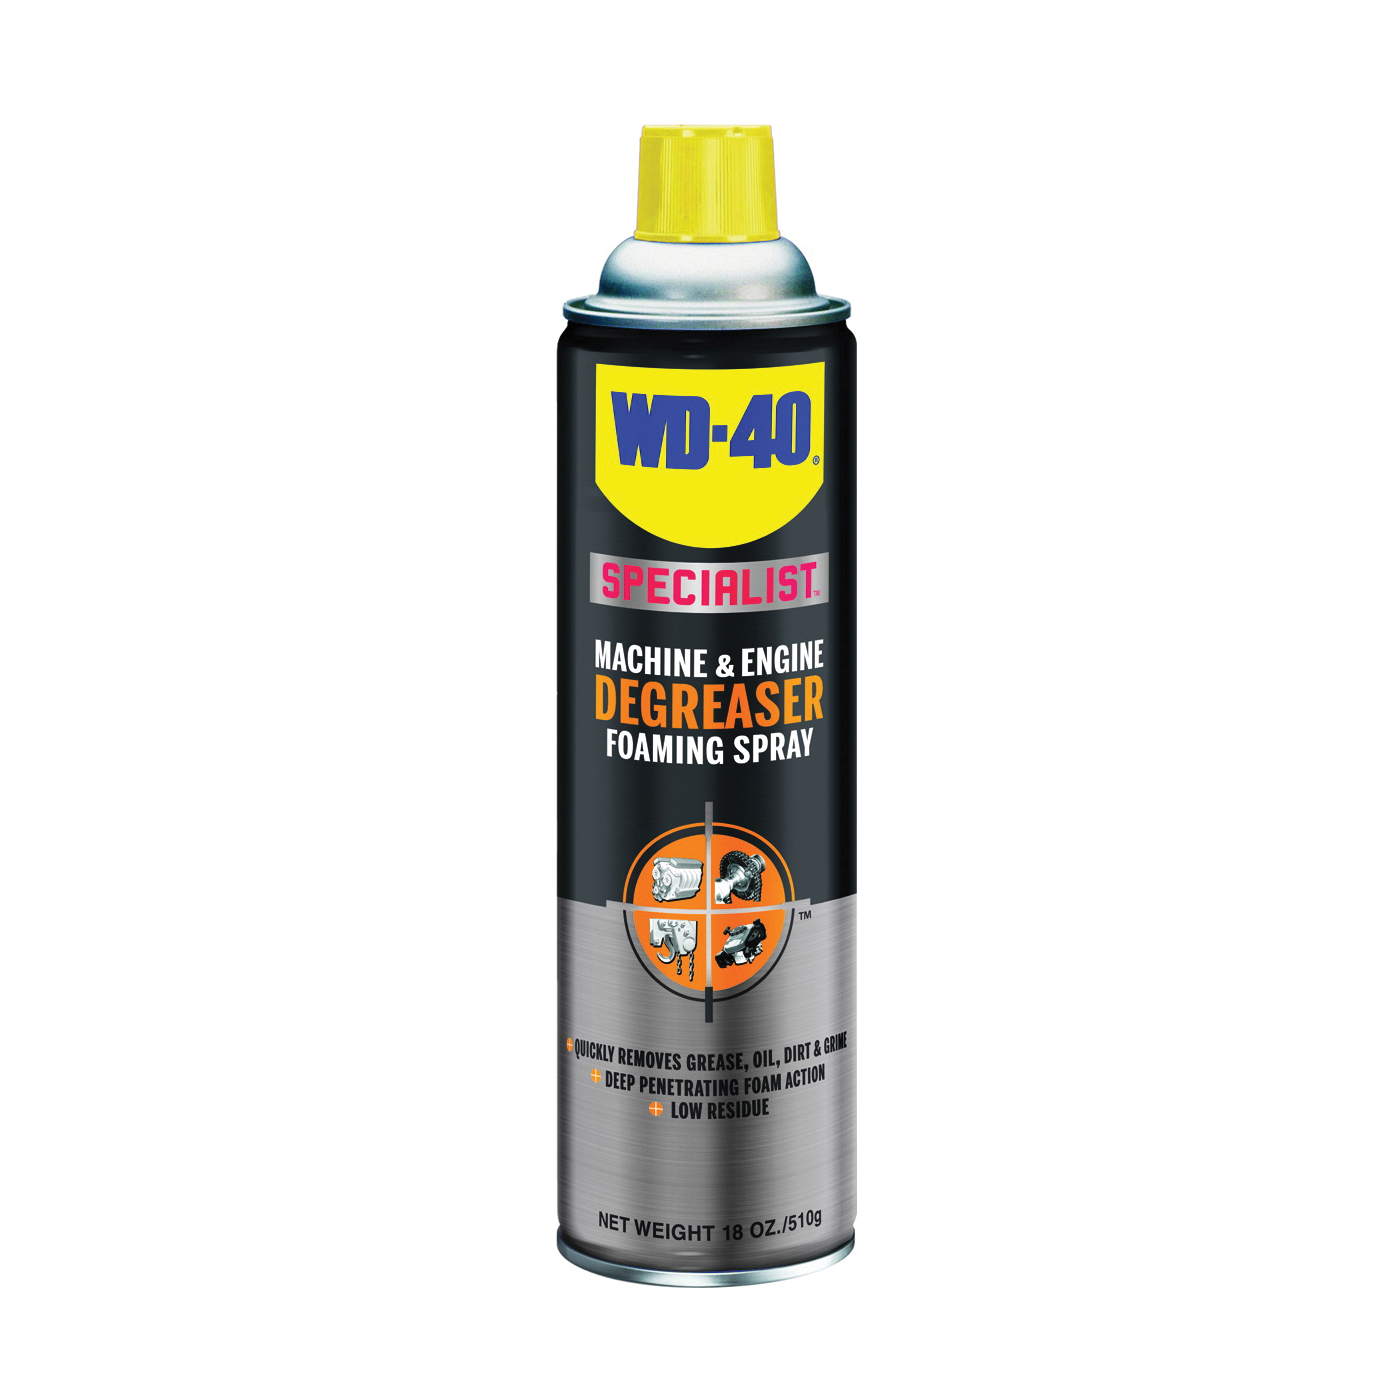 Picture of WD-40 300070 Machine and Engine Degreaser, 18 oz Package, Aerosol Can, Liquid, Citrus